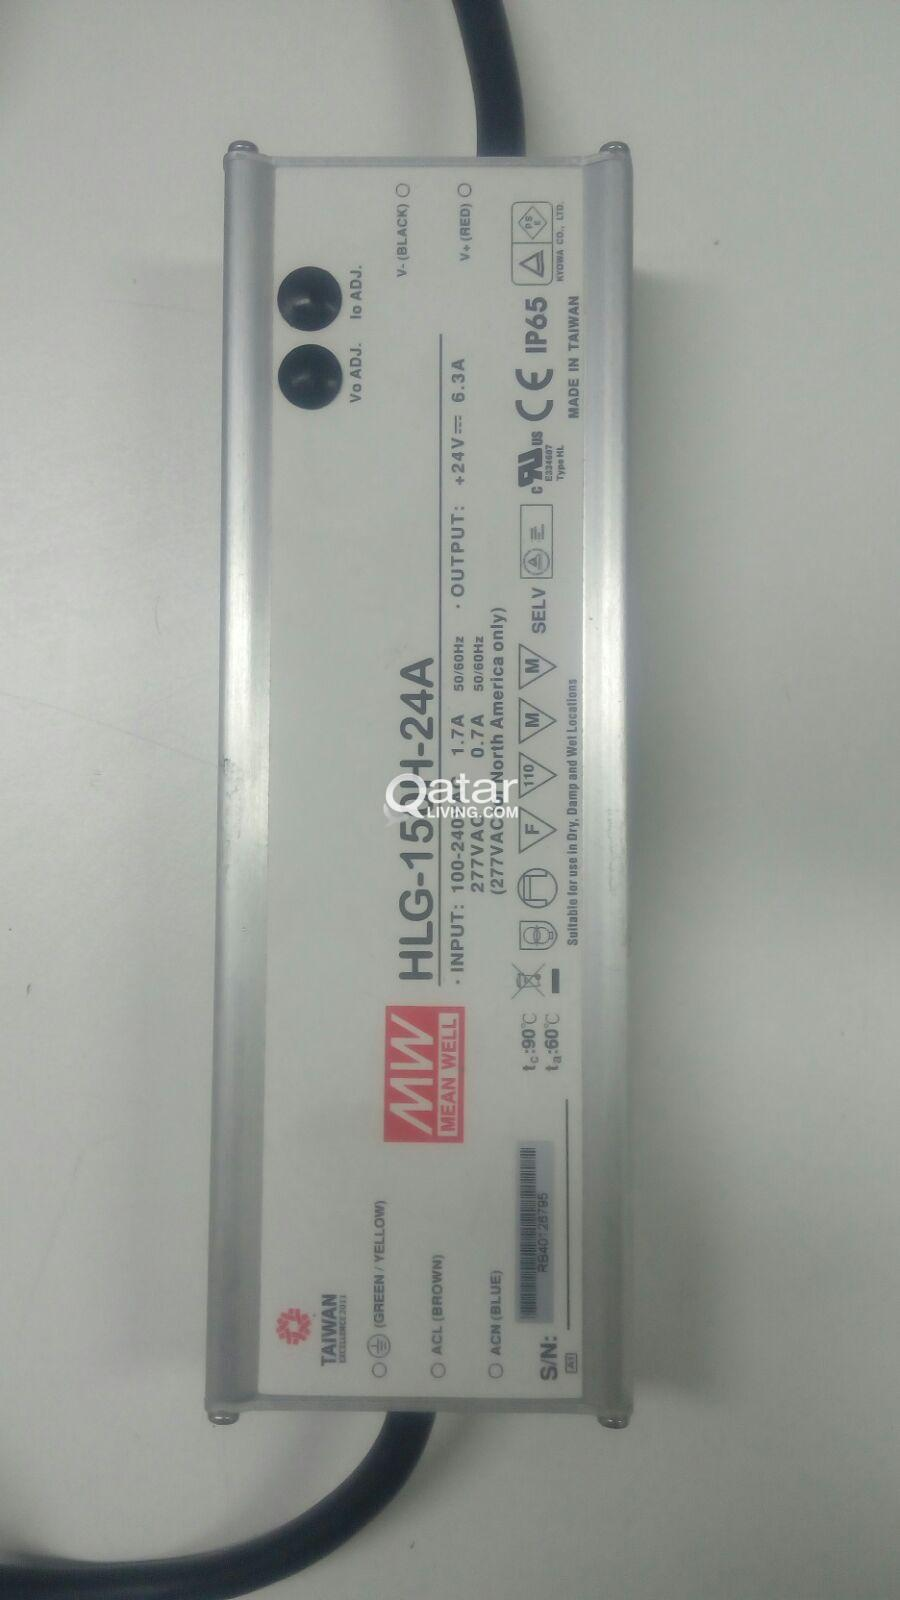 220 V Ac To 24 Dc Led Power Supply Qatar Living Volts Title Information Hlg 80h Meanwell